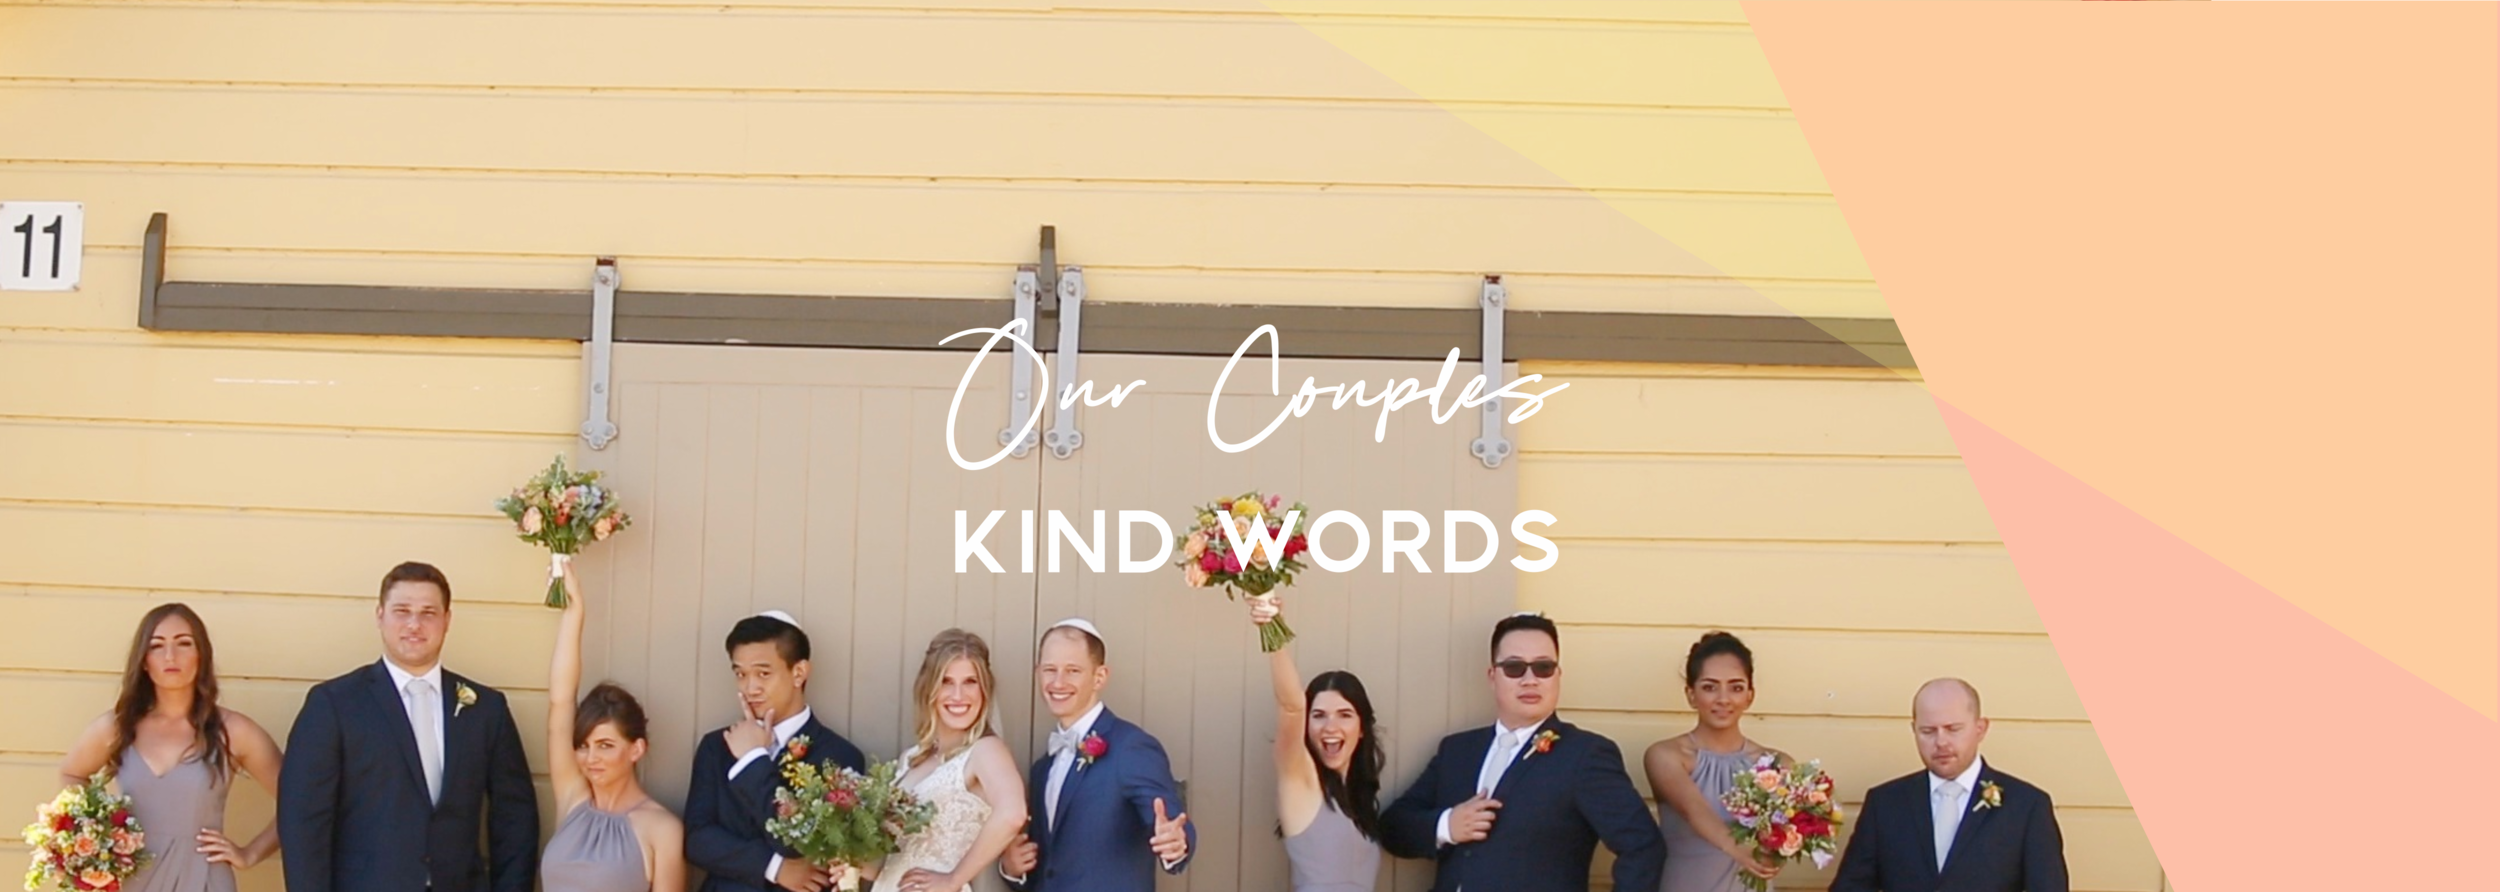 Kind Words Banner 1.png